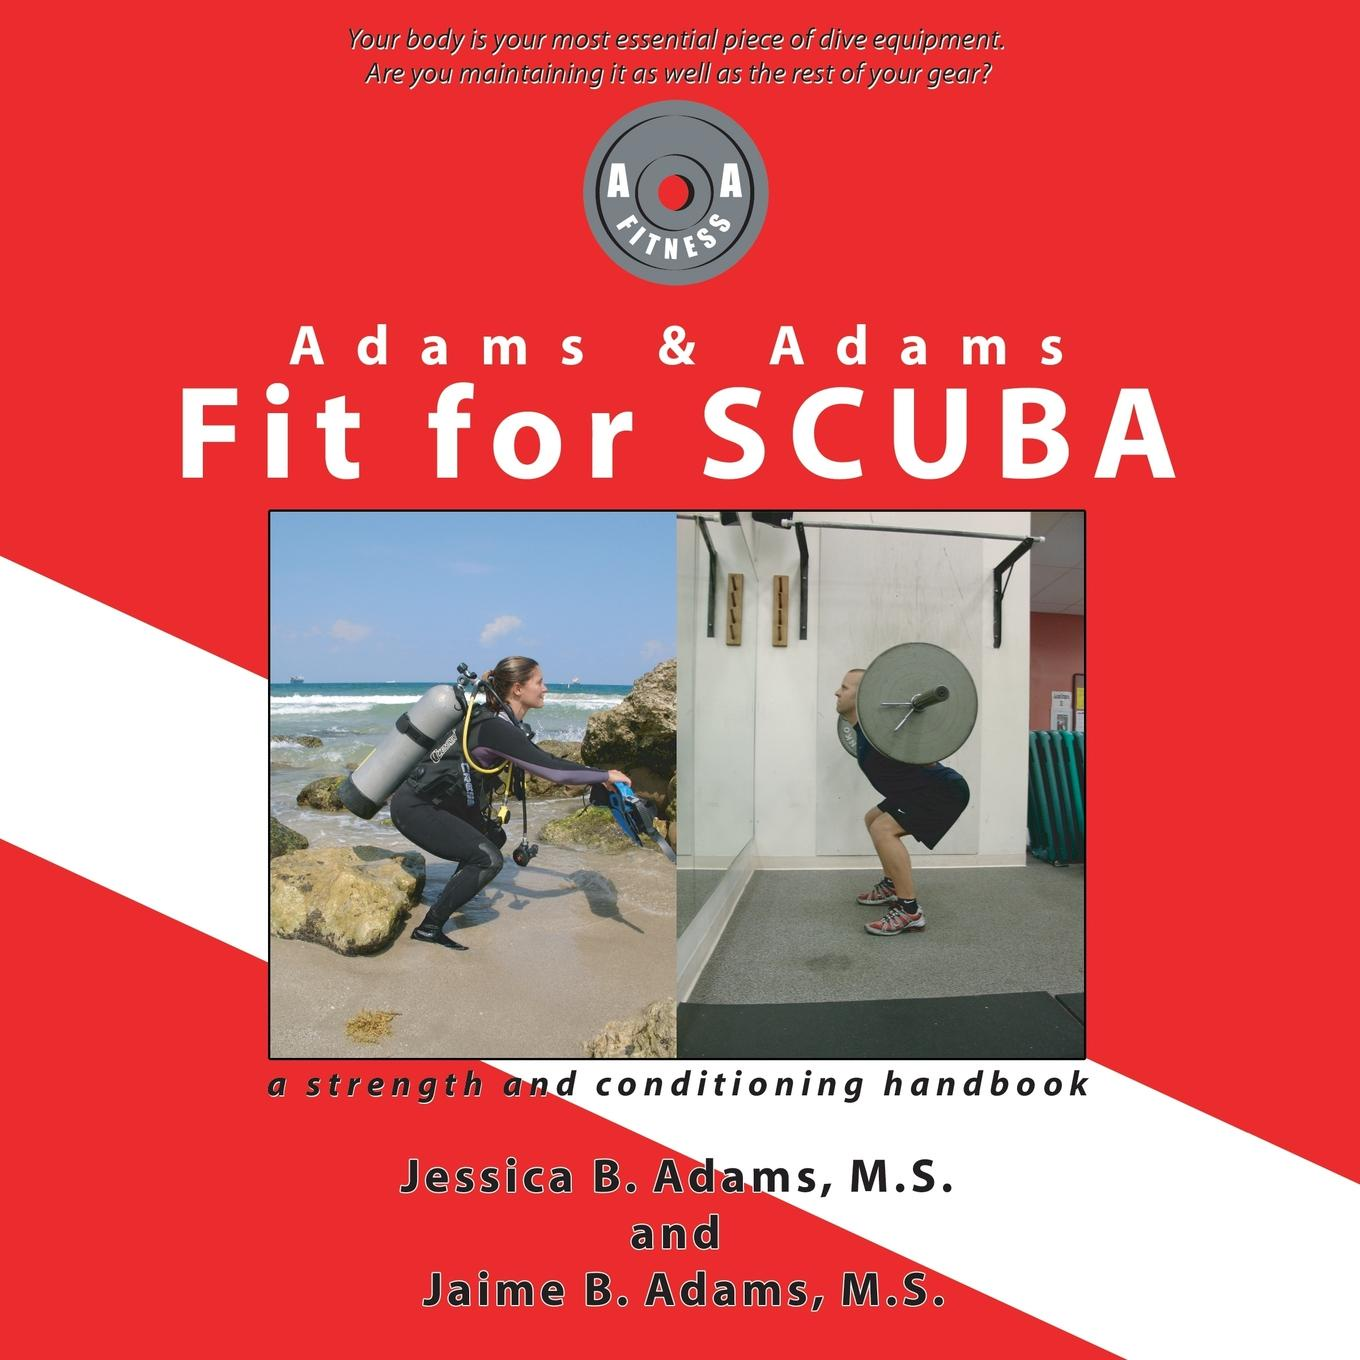 Jessica B Adams, Jaime B Adams Adams & Adams Fit for Scuba kev adams denain